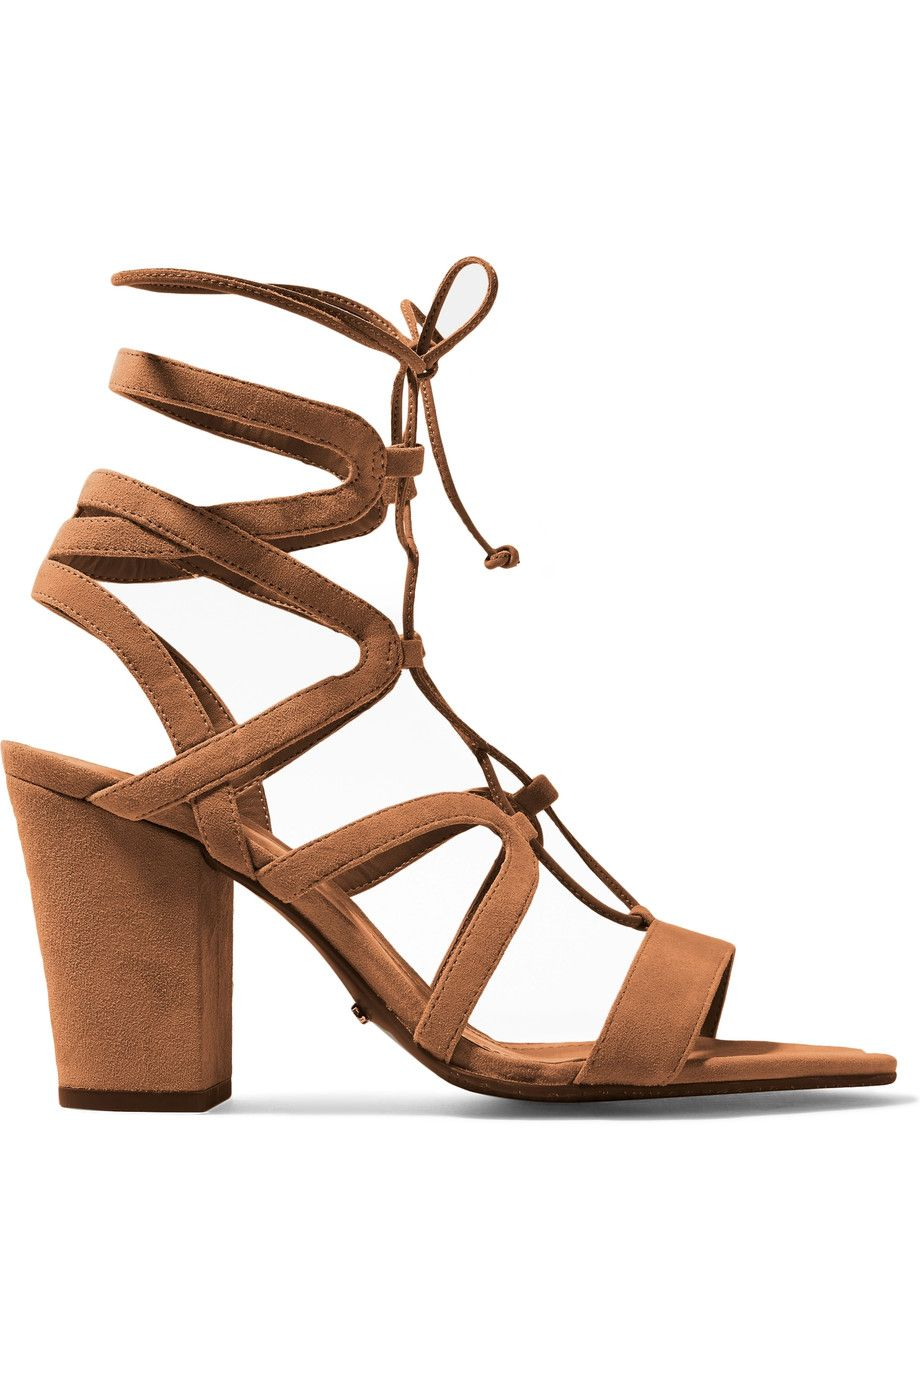 Shop on-sale SCHUTZ Iggy lace-up cutout suede sandals. Browse other  discount designer High Heel & more on The Most Fashionable Fashion Outlet,  THE OUTNET.